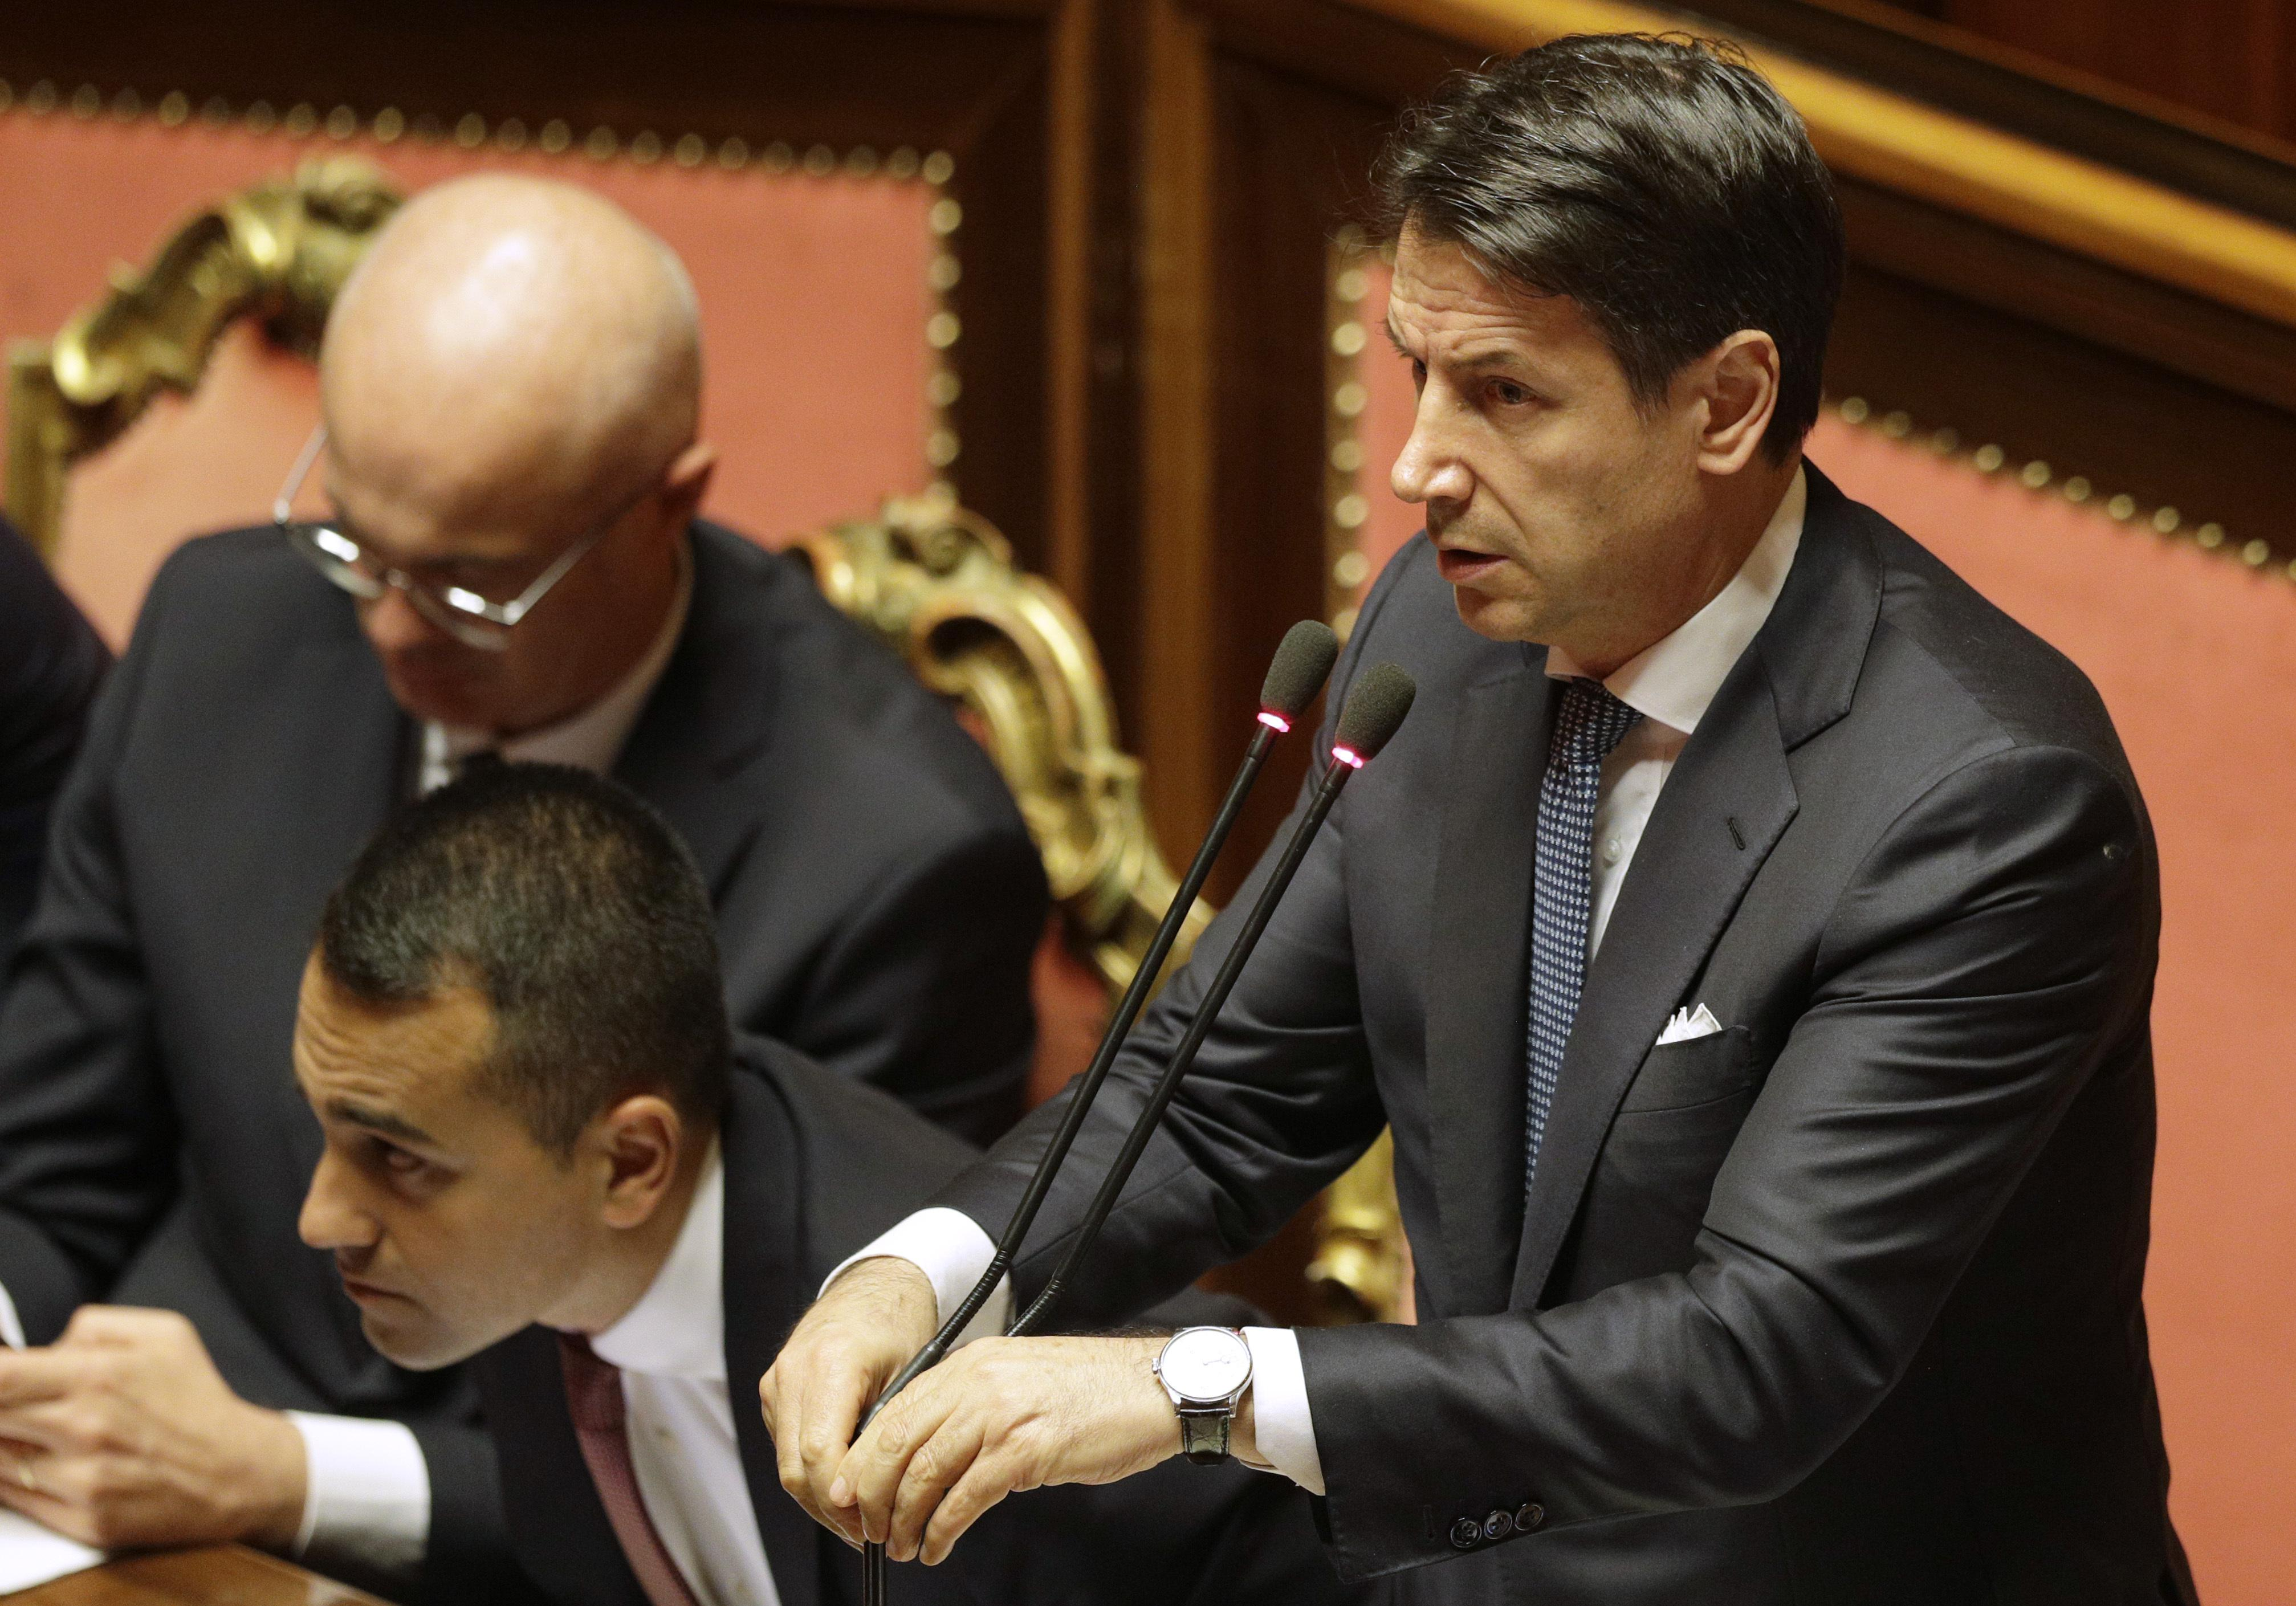 The Latest: Italy's new pro-Europe govt wins confidence vote